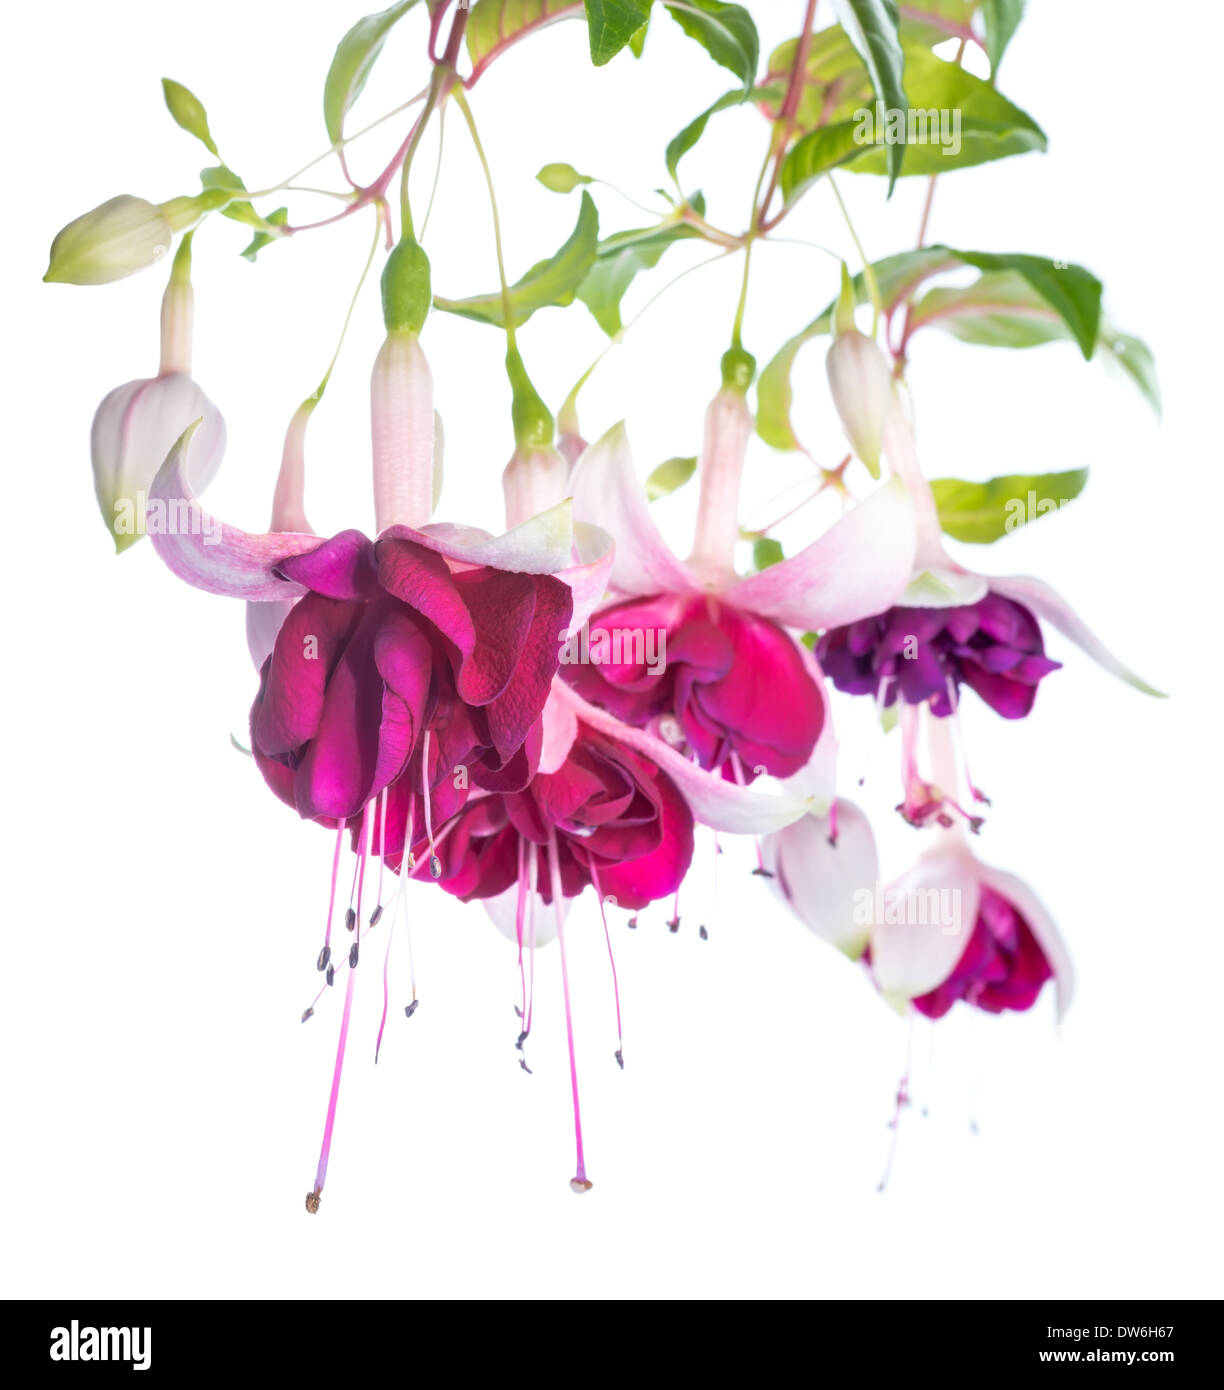 Violet and pink fuchsia flower isolated on white background tamara violet and pink fuchsia flower isolated on white background tamara balyasnikova mightylinksfo